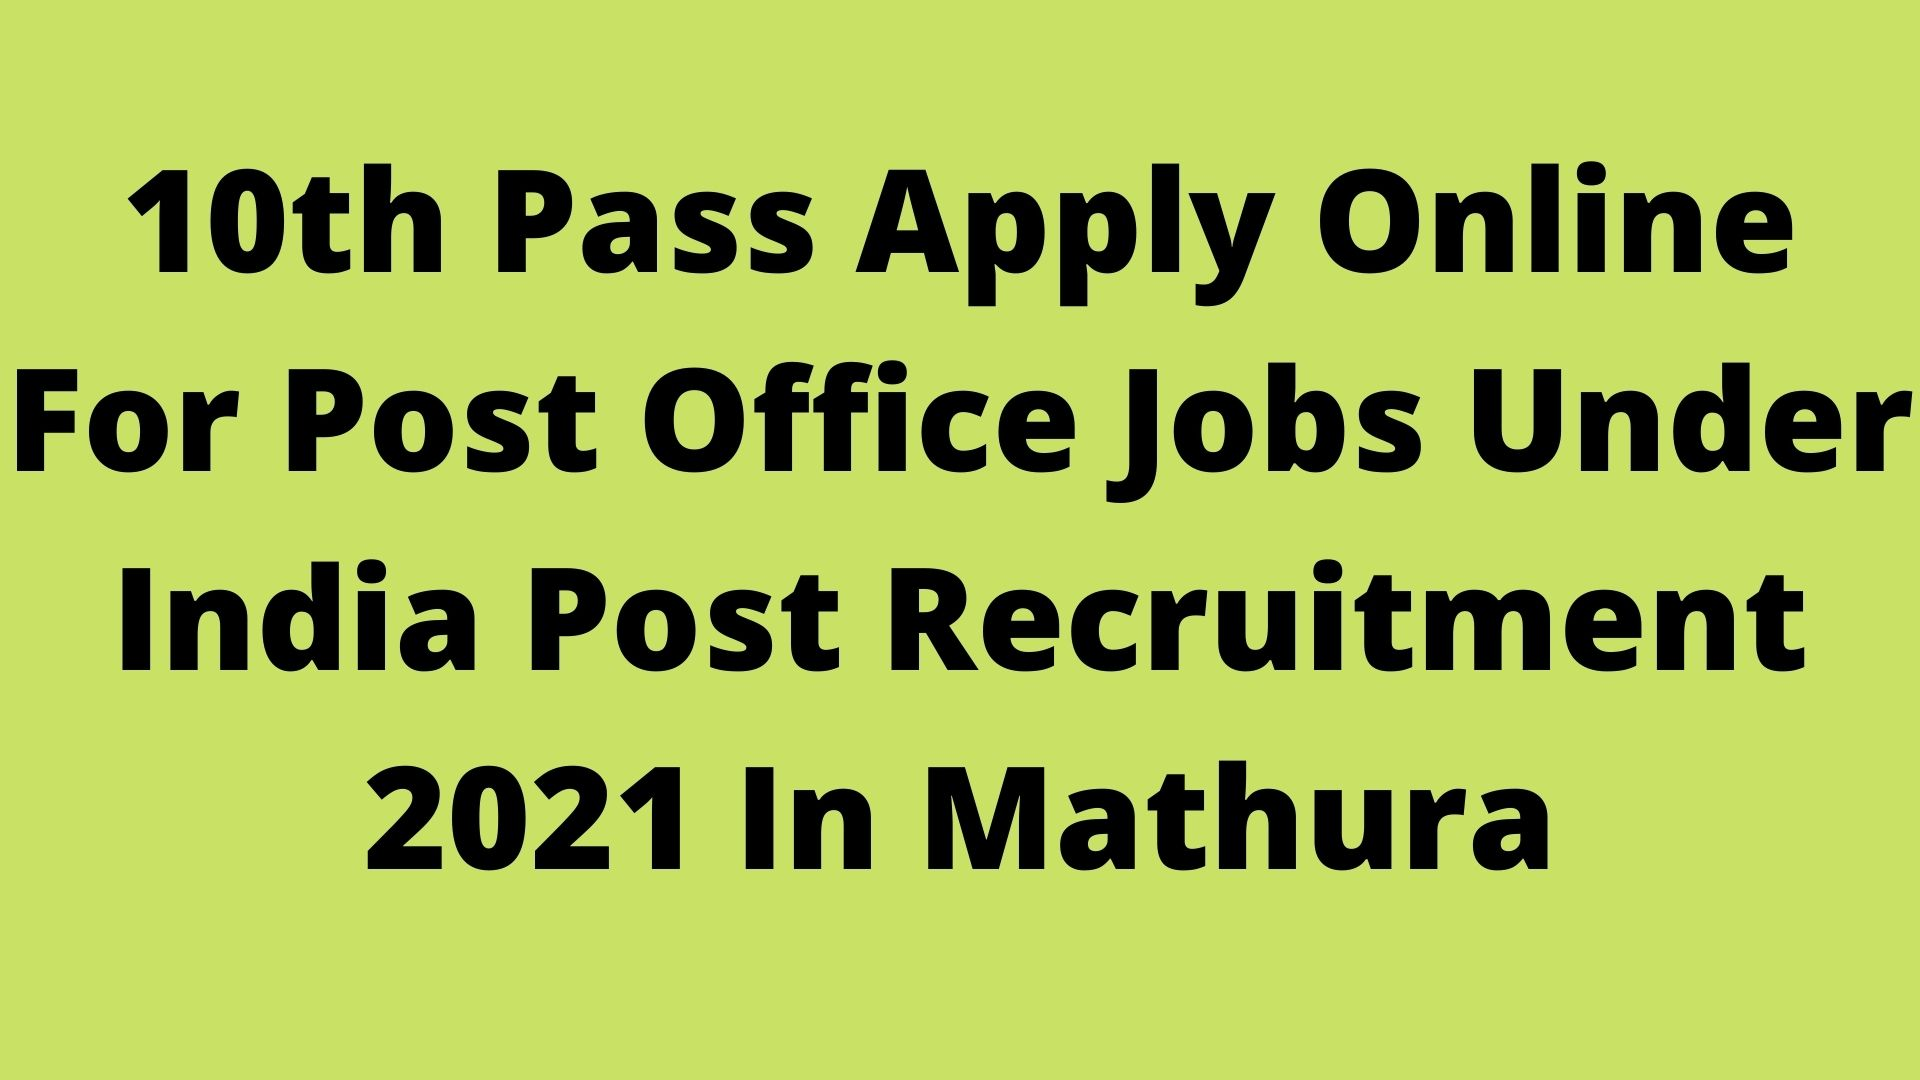 10th Pass Apply Online For Post Office Jobs Under India Post Recruitment 2021 In Mathura